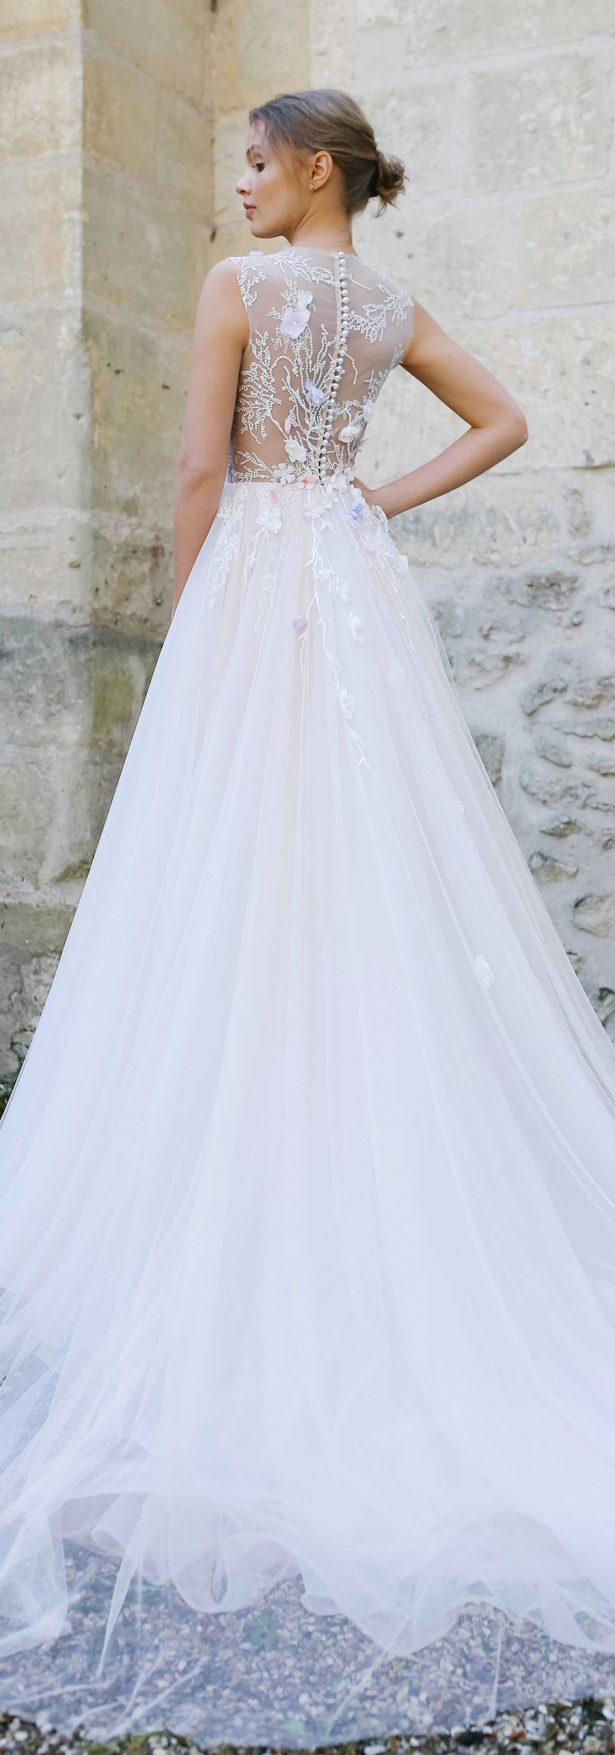 20 fabulous wedding dresses you can buy on etsy belle for Etsy dresses for weddings